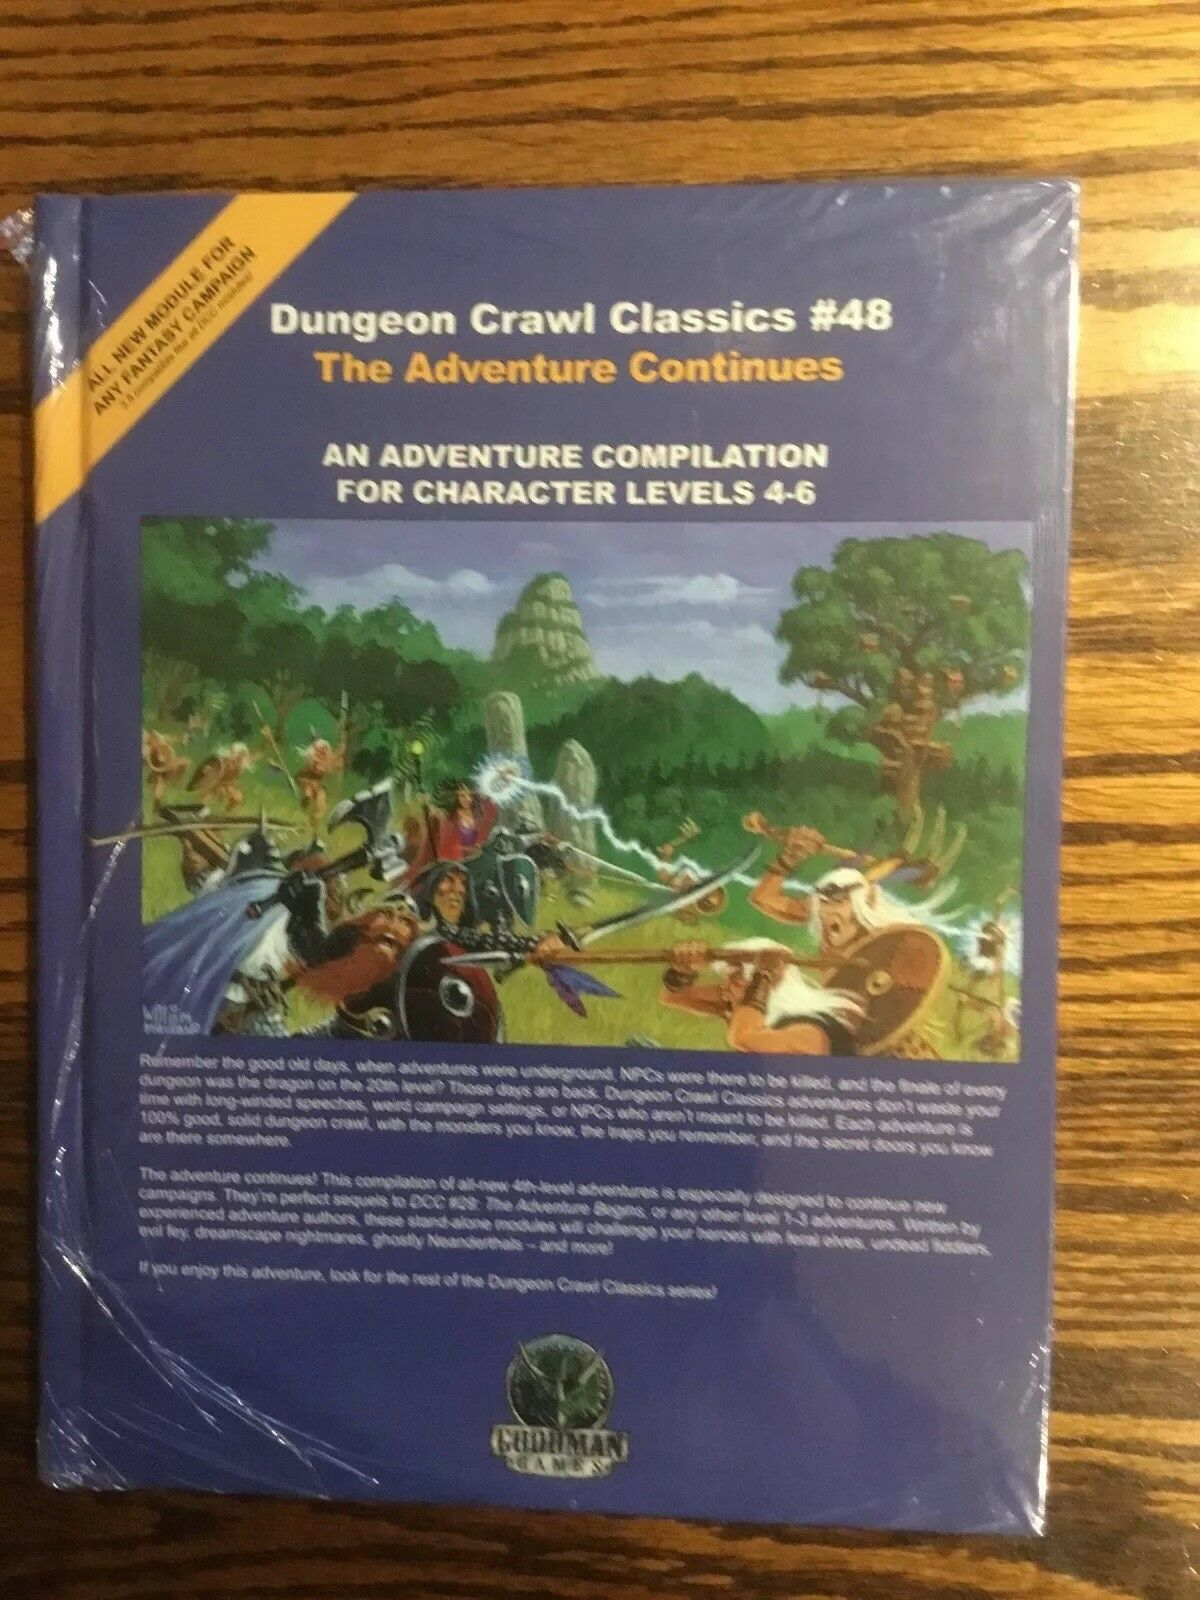 Dungeon Crawl Classics 48 The Adventure Continues D&D AD&D Pathfinder